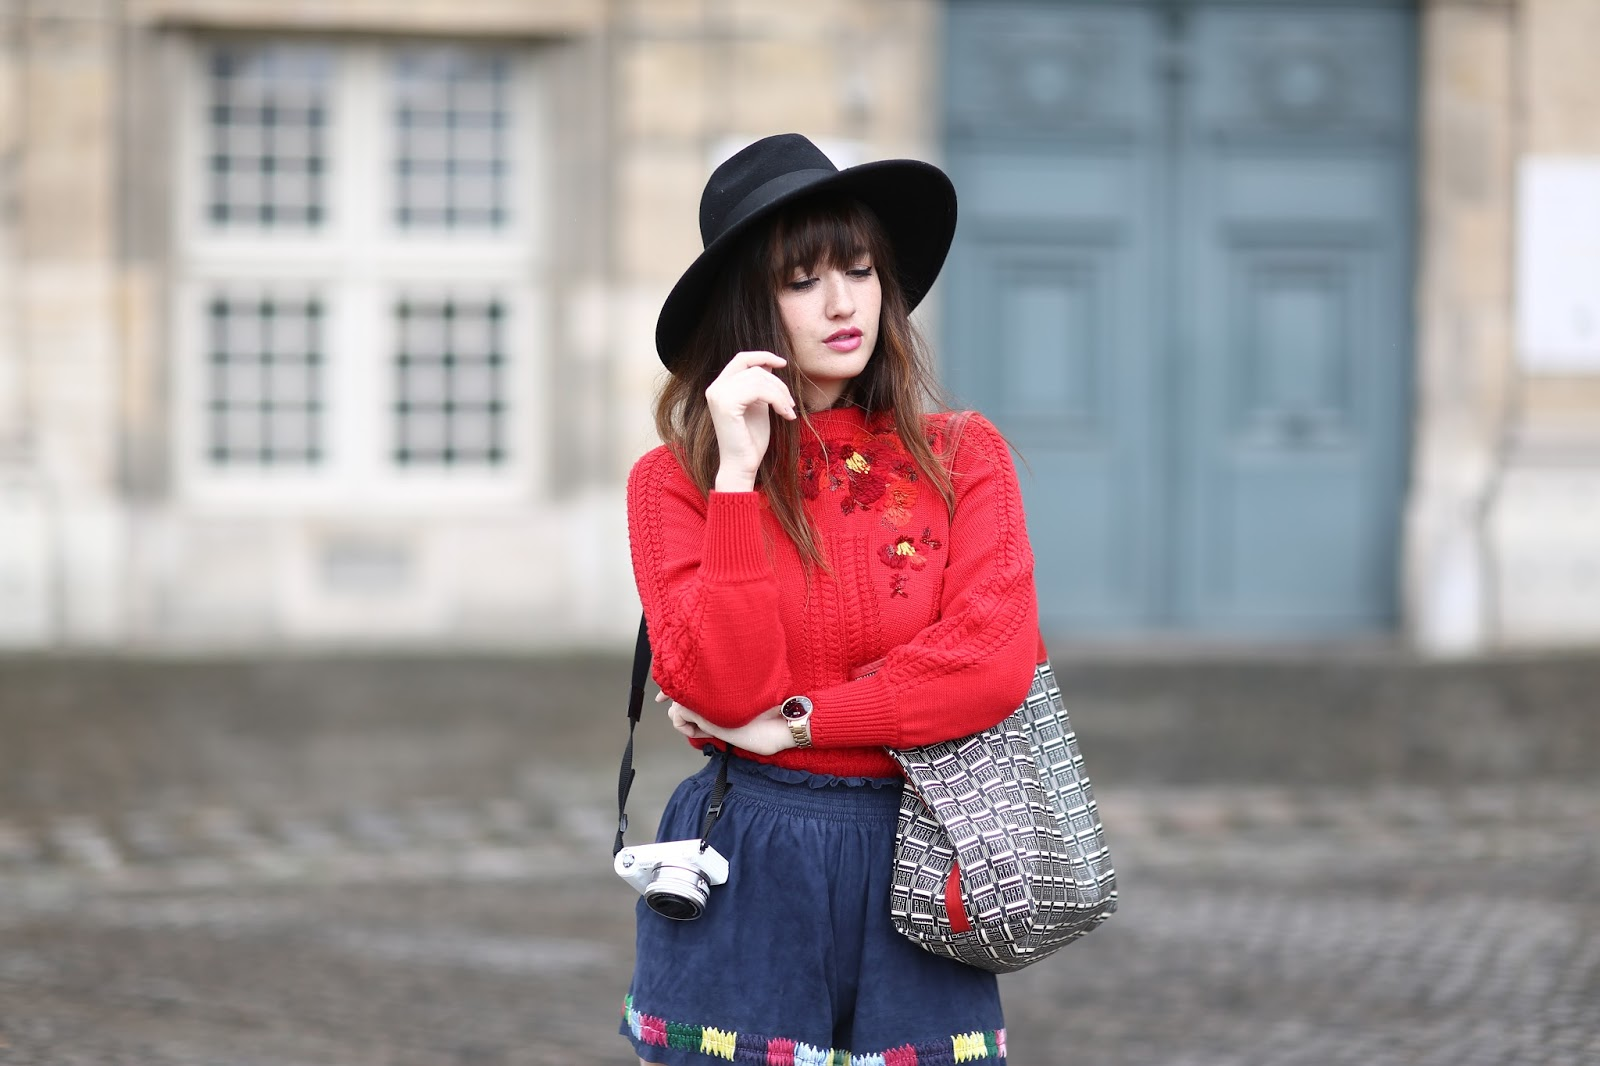 meetmeinparee, blogger, fashion, look, style, parisian blogger, mode, look book, chic parisian style, manoush